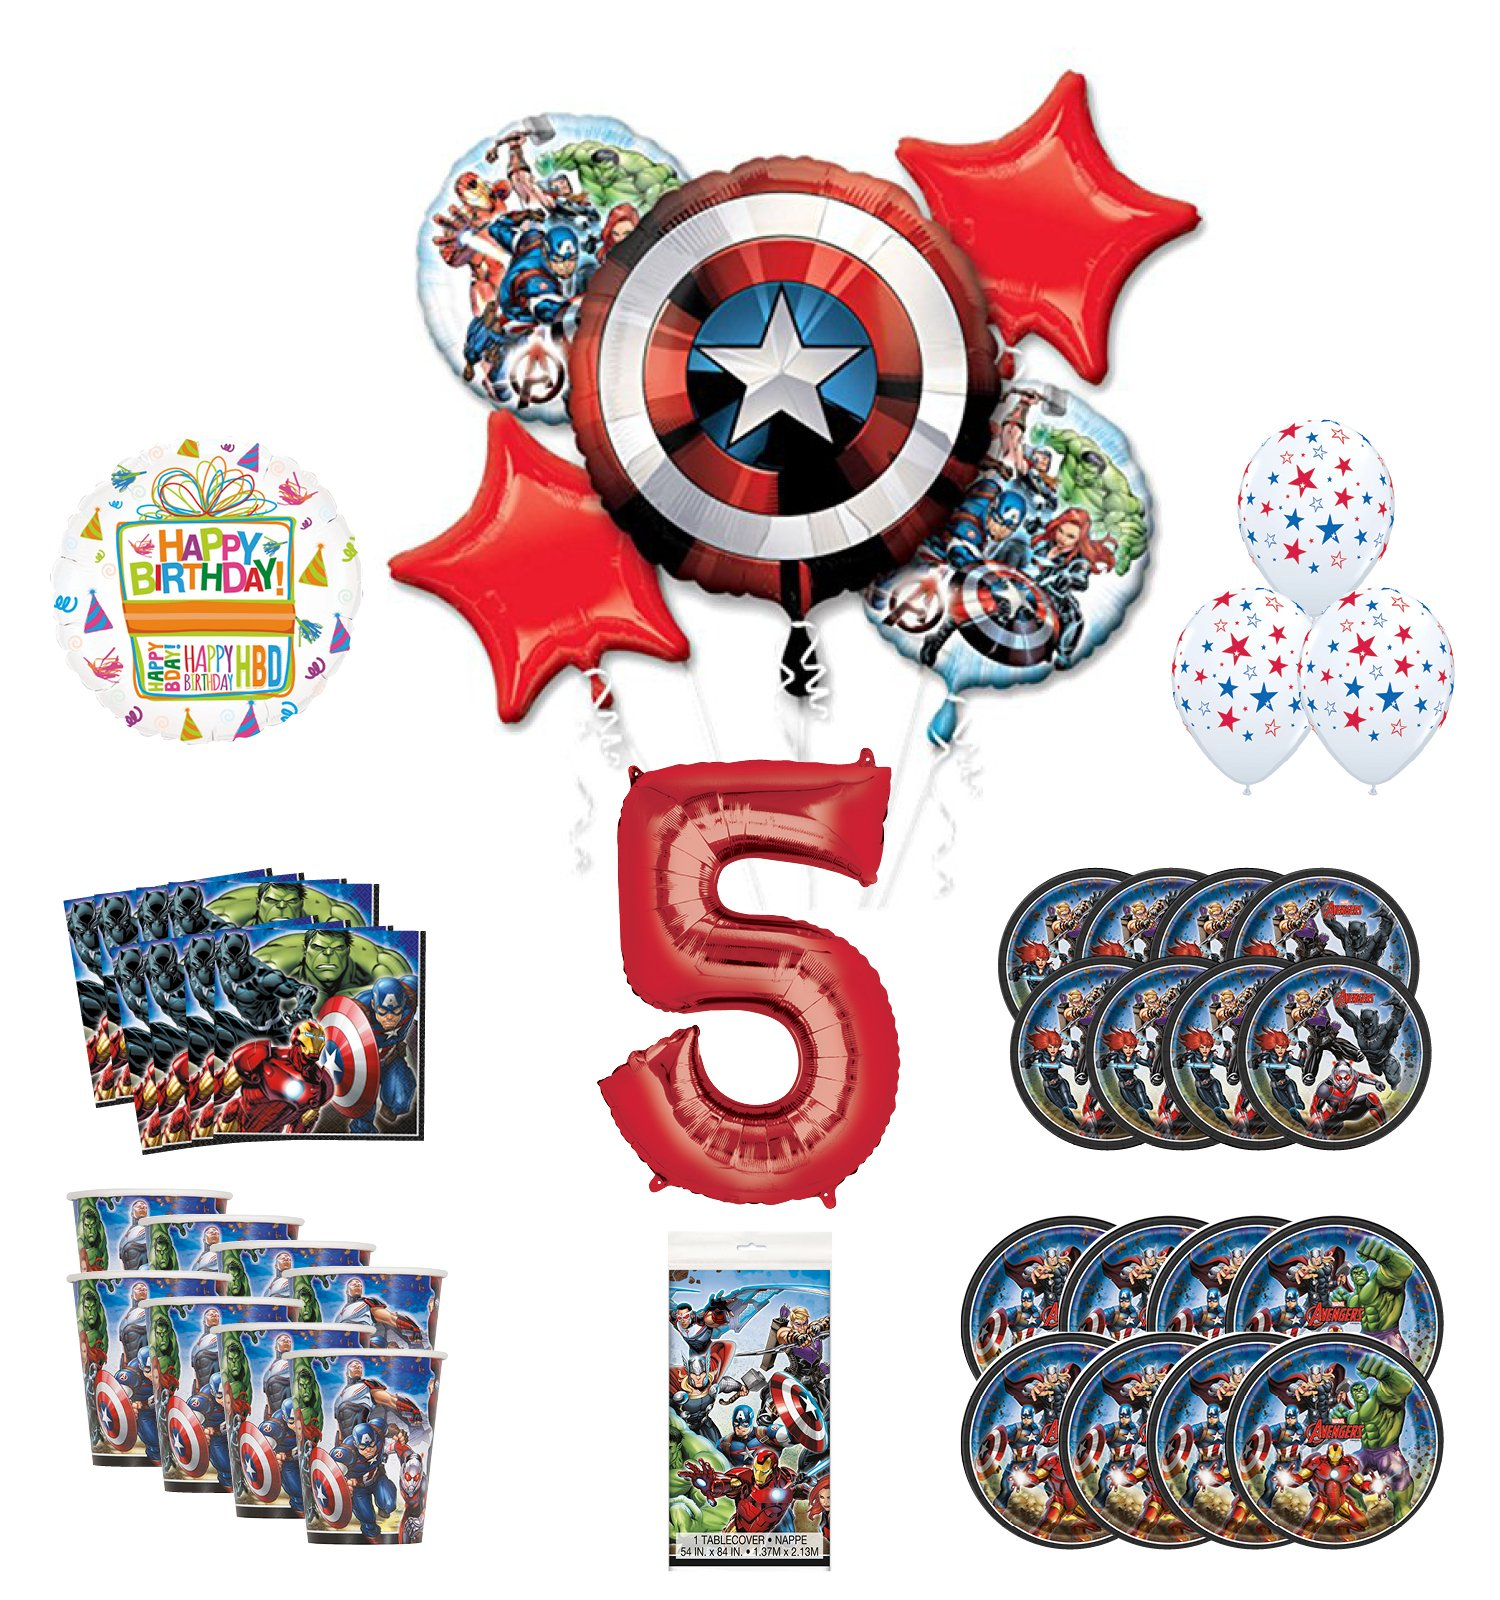 Mayflower Products Avengers 5th Birthday Party Supplies and 8 Guest Balloon Decoration Kit